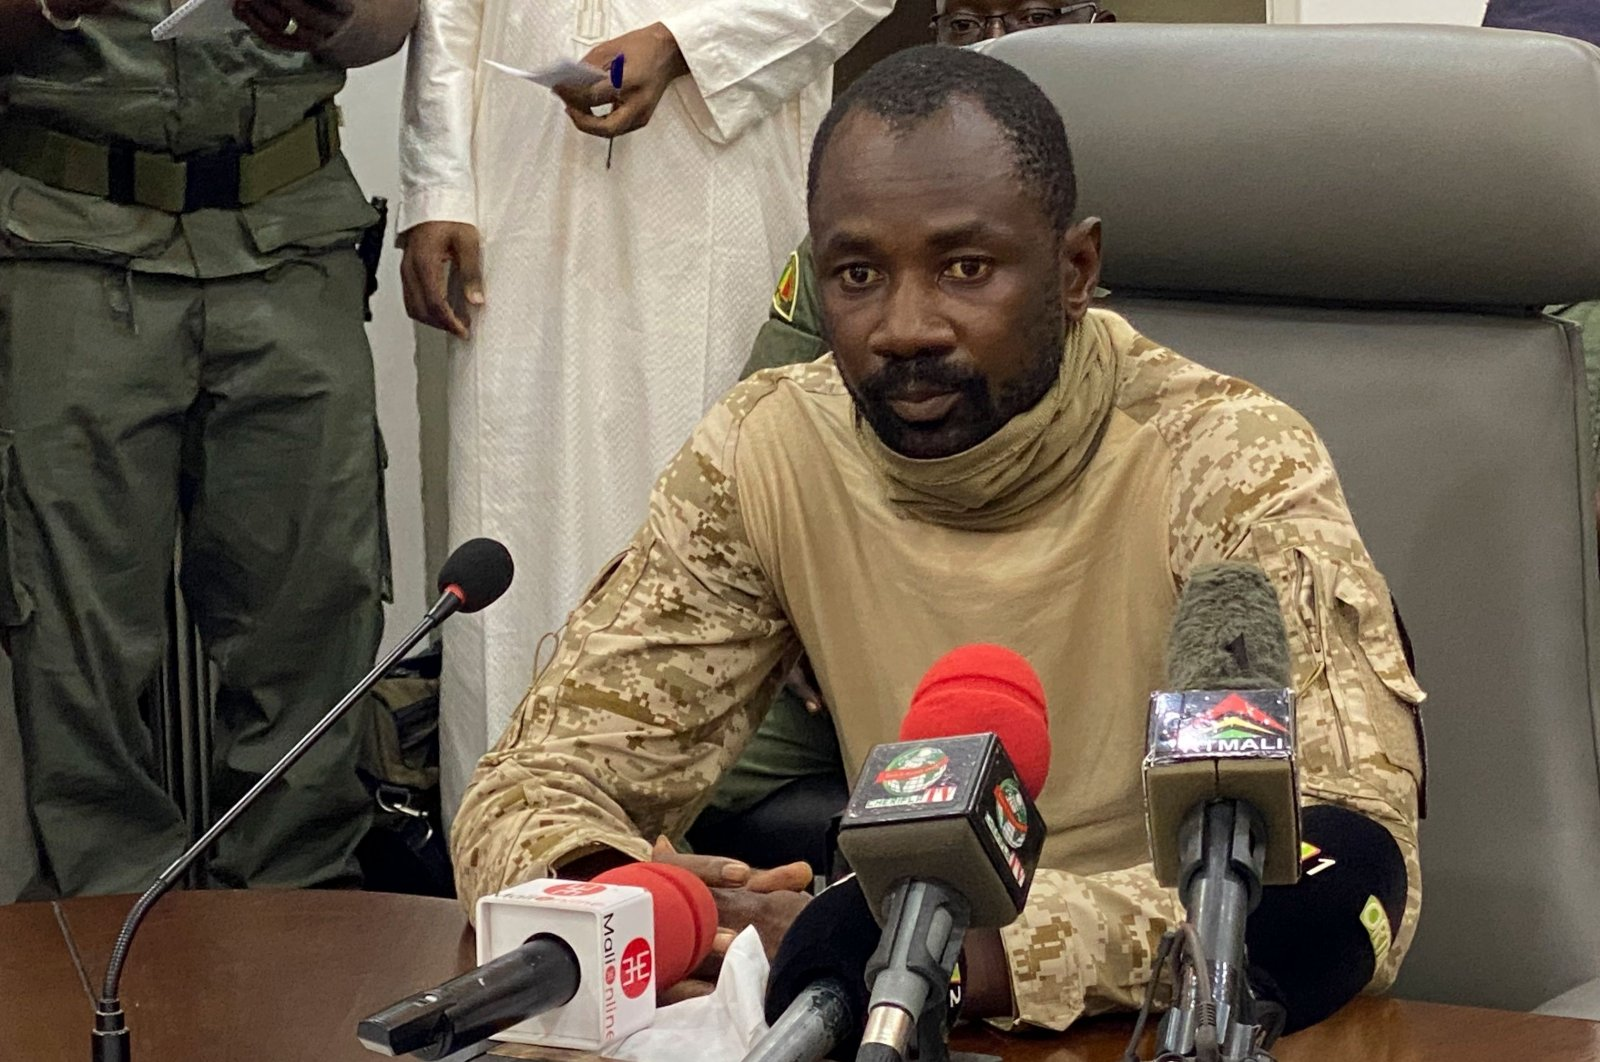 Col. Assimi Goita speaks to the press at the Malian Ministry of Defence, after confirming his position as the president of the National Committee for the Salvation of the People (CNSP), Bamako, Mali, August 19, 2020. (AFP Photo)